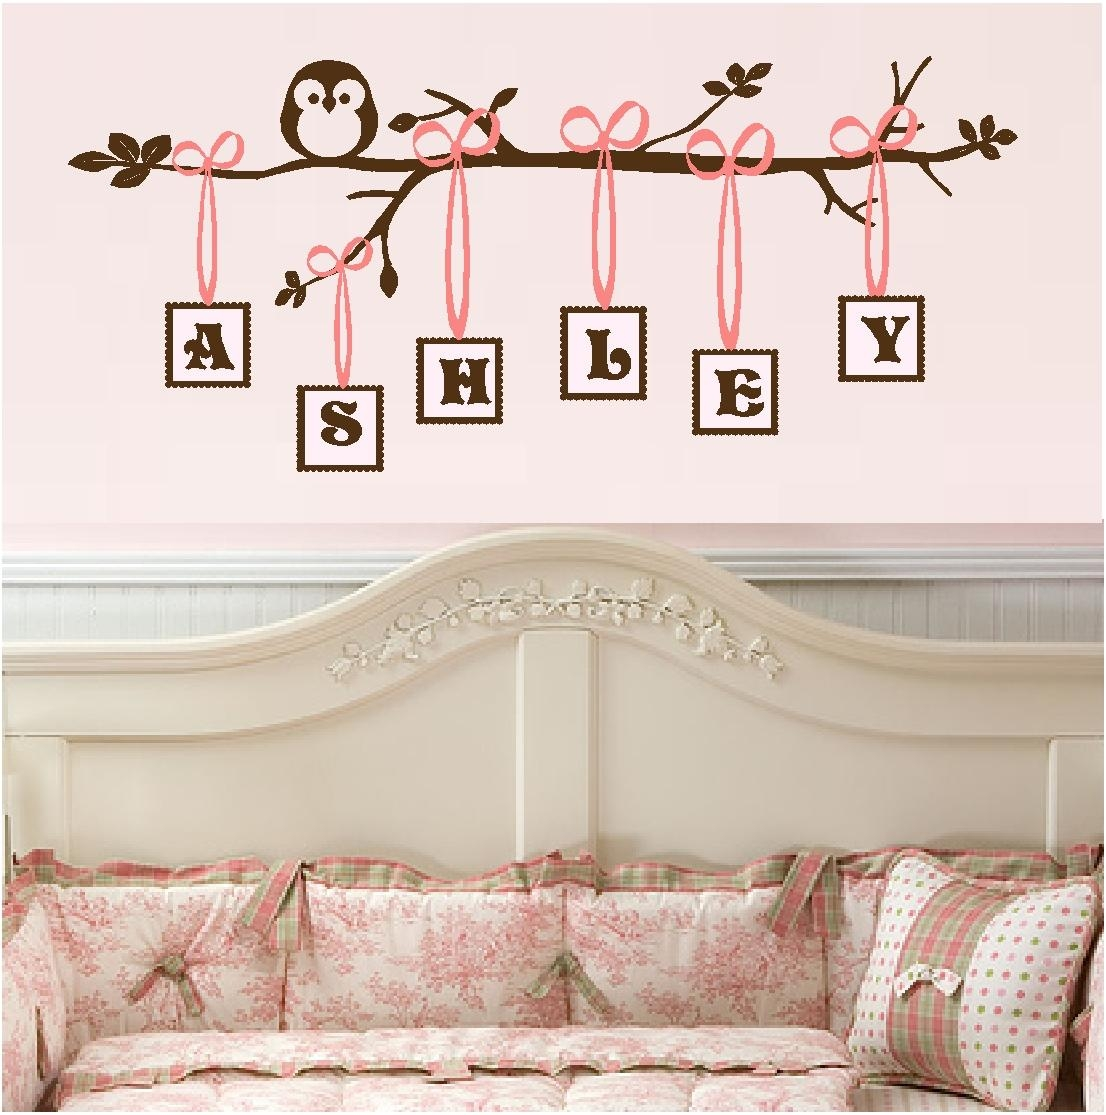 Flower Border Vinyl Decal Wall Stickers Baby Girls Room Decor #035 Regarding Wall Art For Little Girl Room (View 10 of 20)